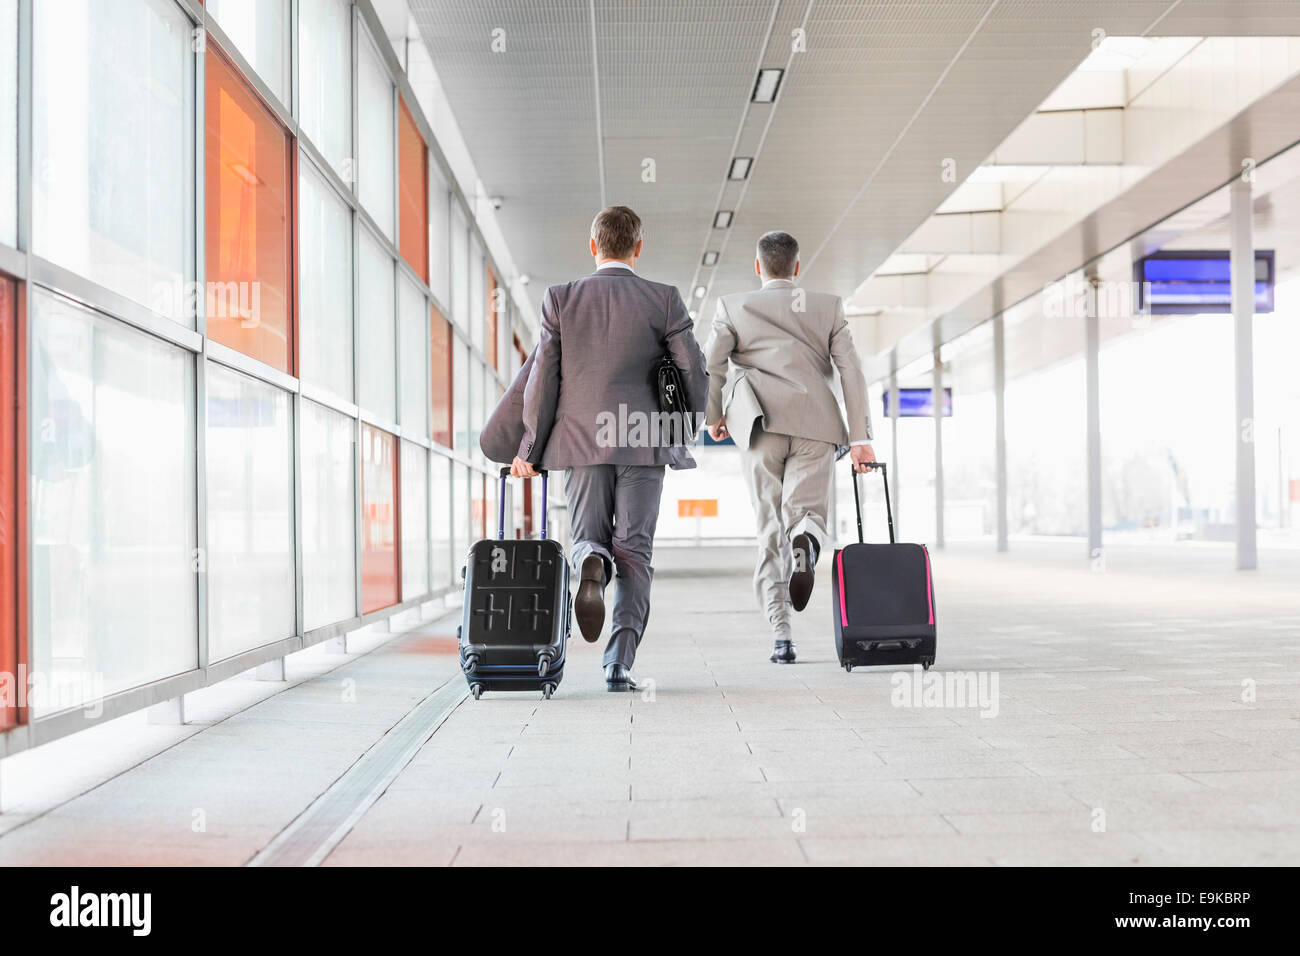 Full length rear view of businessmen with luggage running on railroad platform - Stock Image